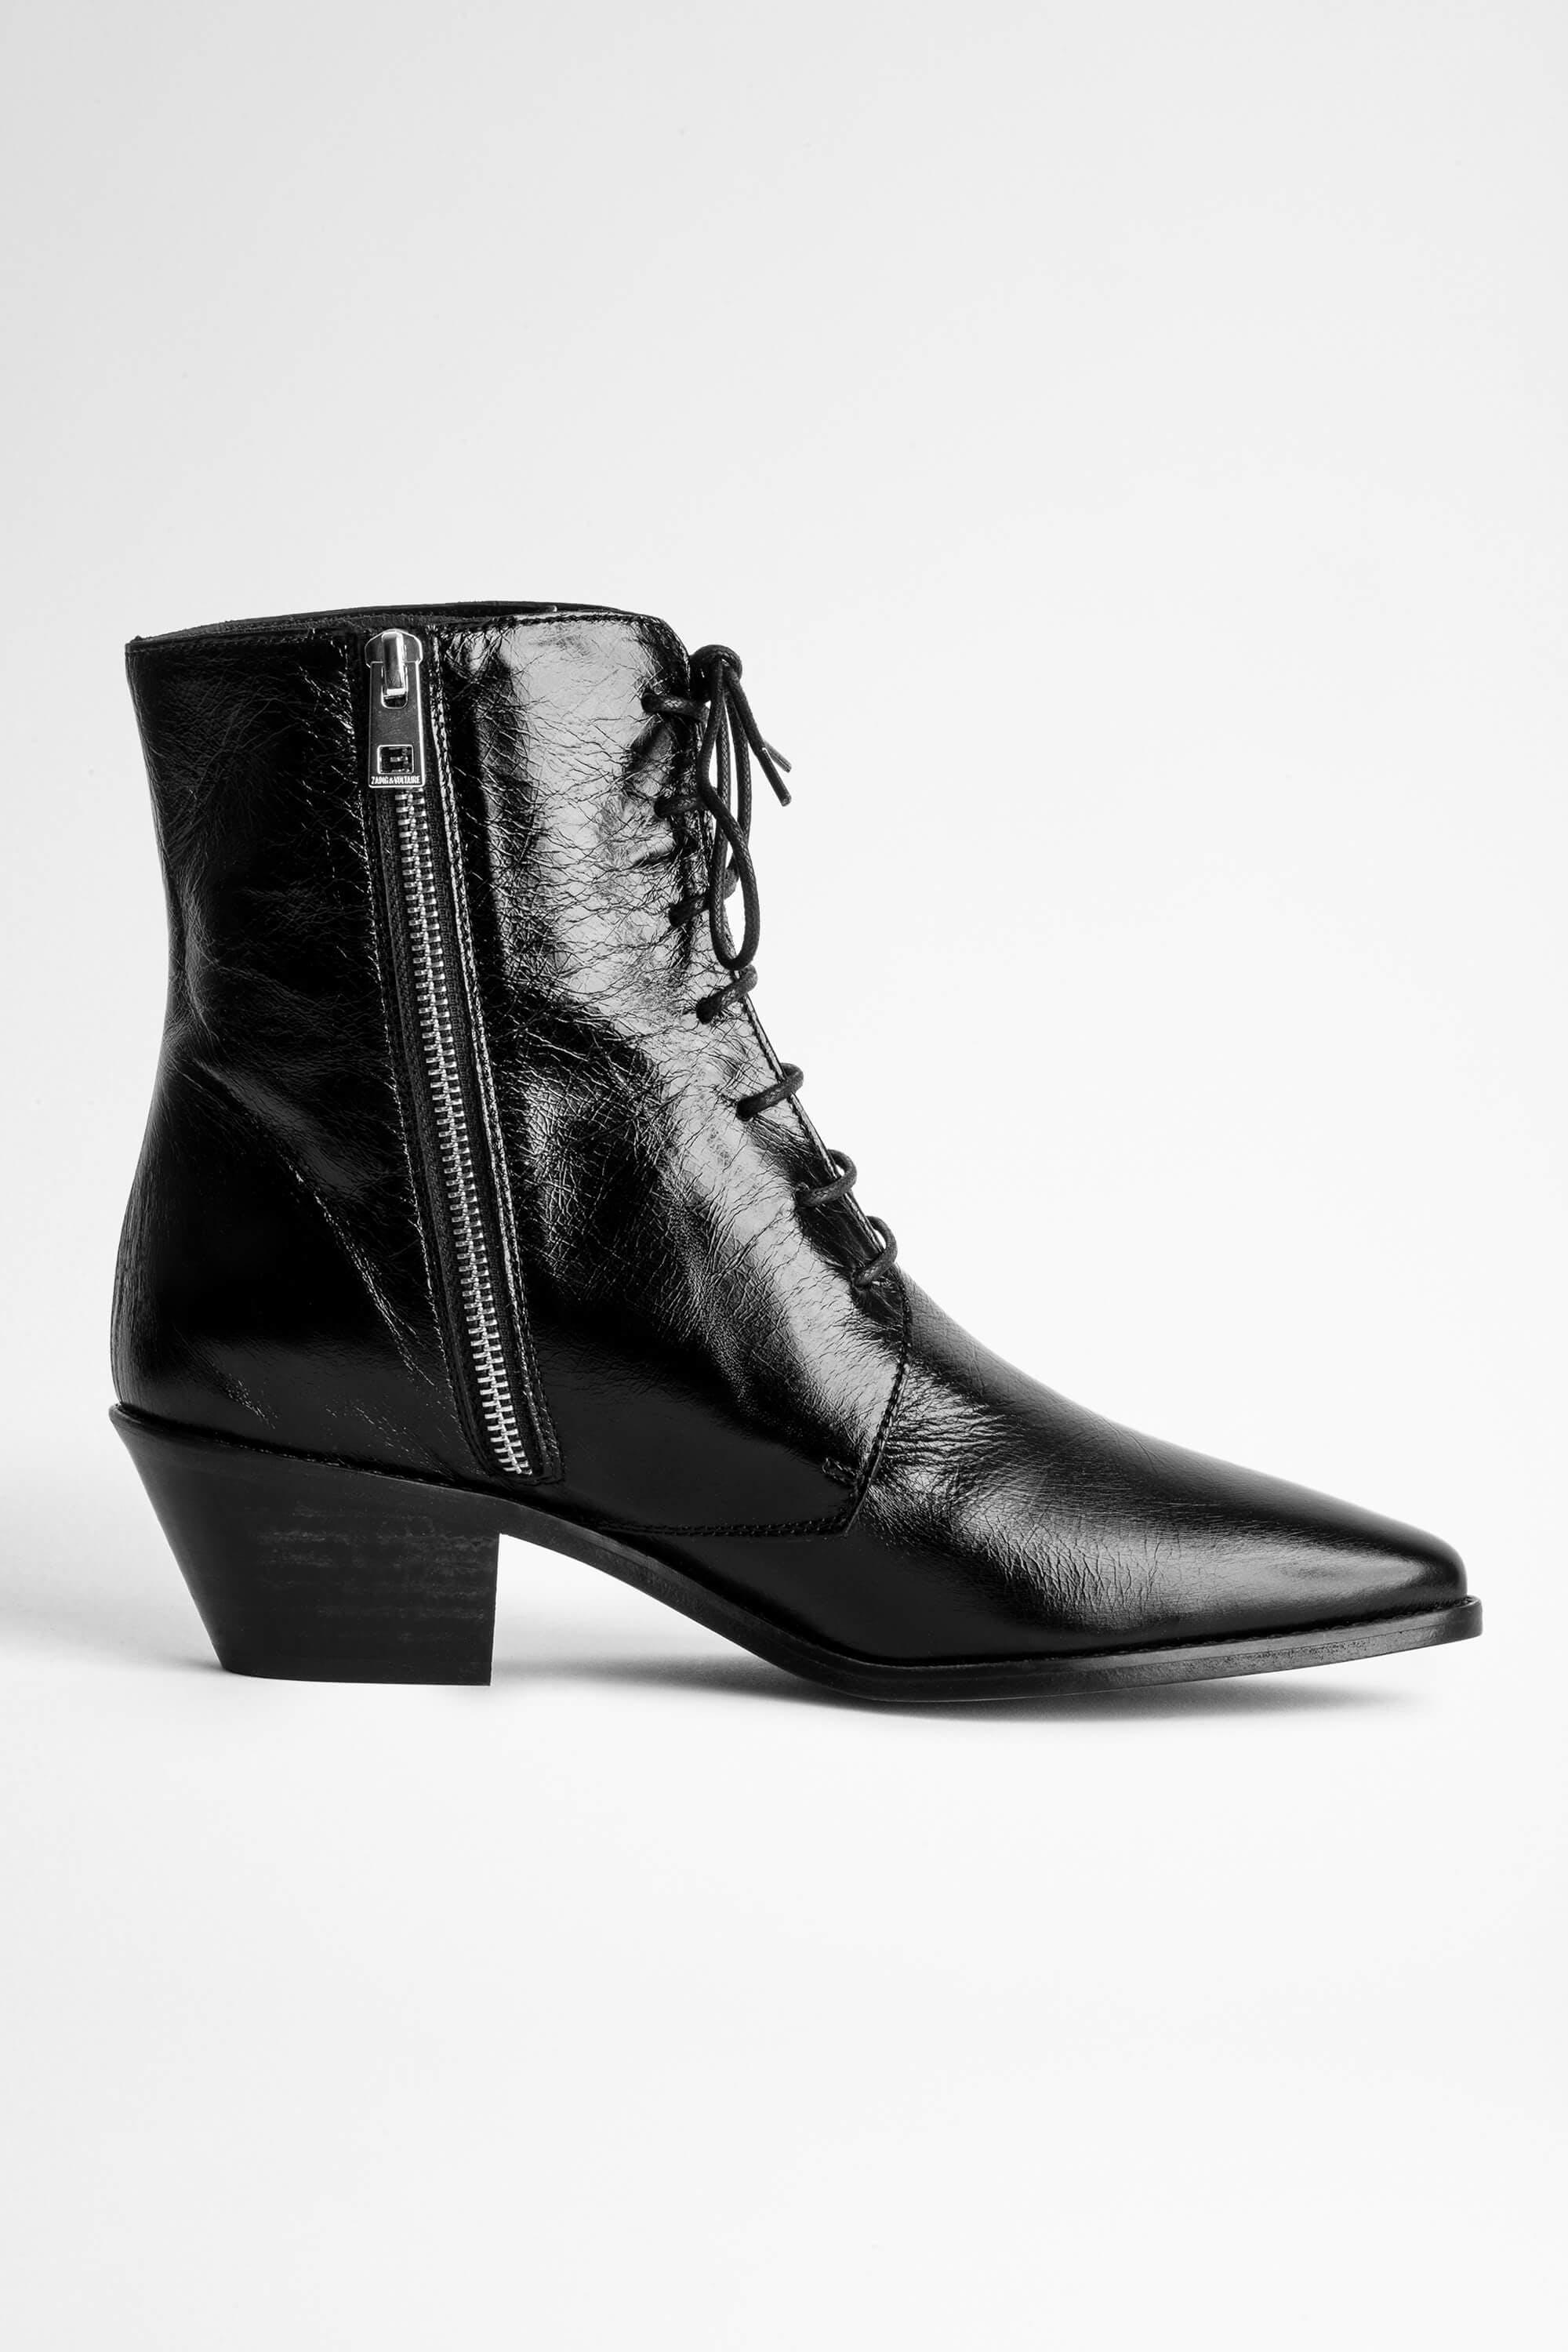 Tyler Laced Vintage Ankle Boots 1